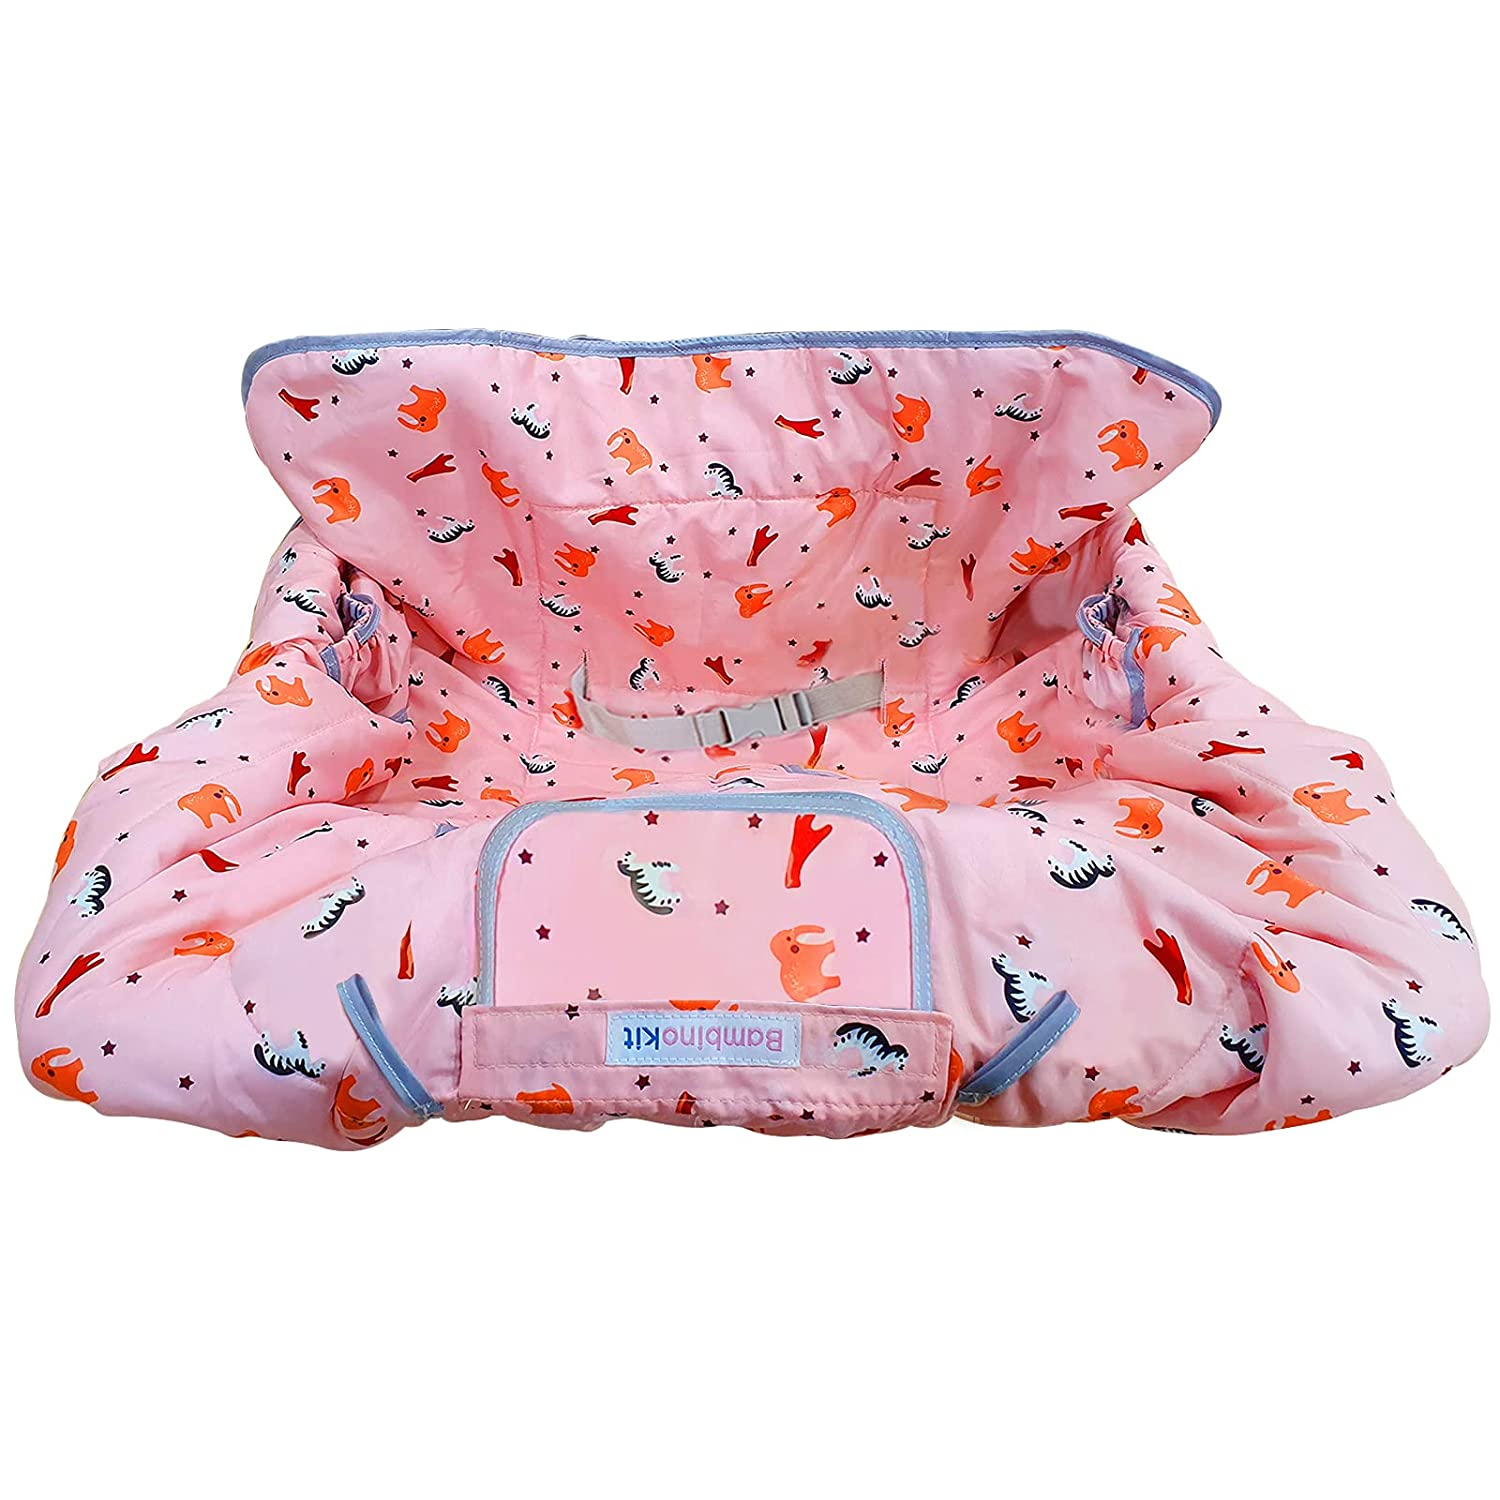 BambinoKit Shopping Cart & Highchair Cover for Baby Boys & Girls - Full Protection, Easy to Install & Carry, Machine Washable - Give Your Baby Soft Cushioned Comfort, Enjoy Easier Shopping!